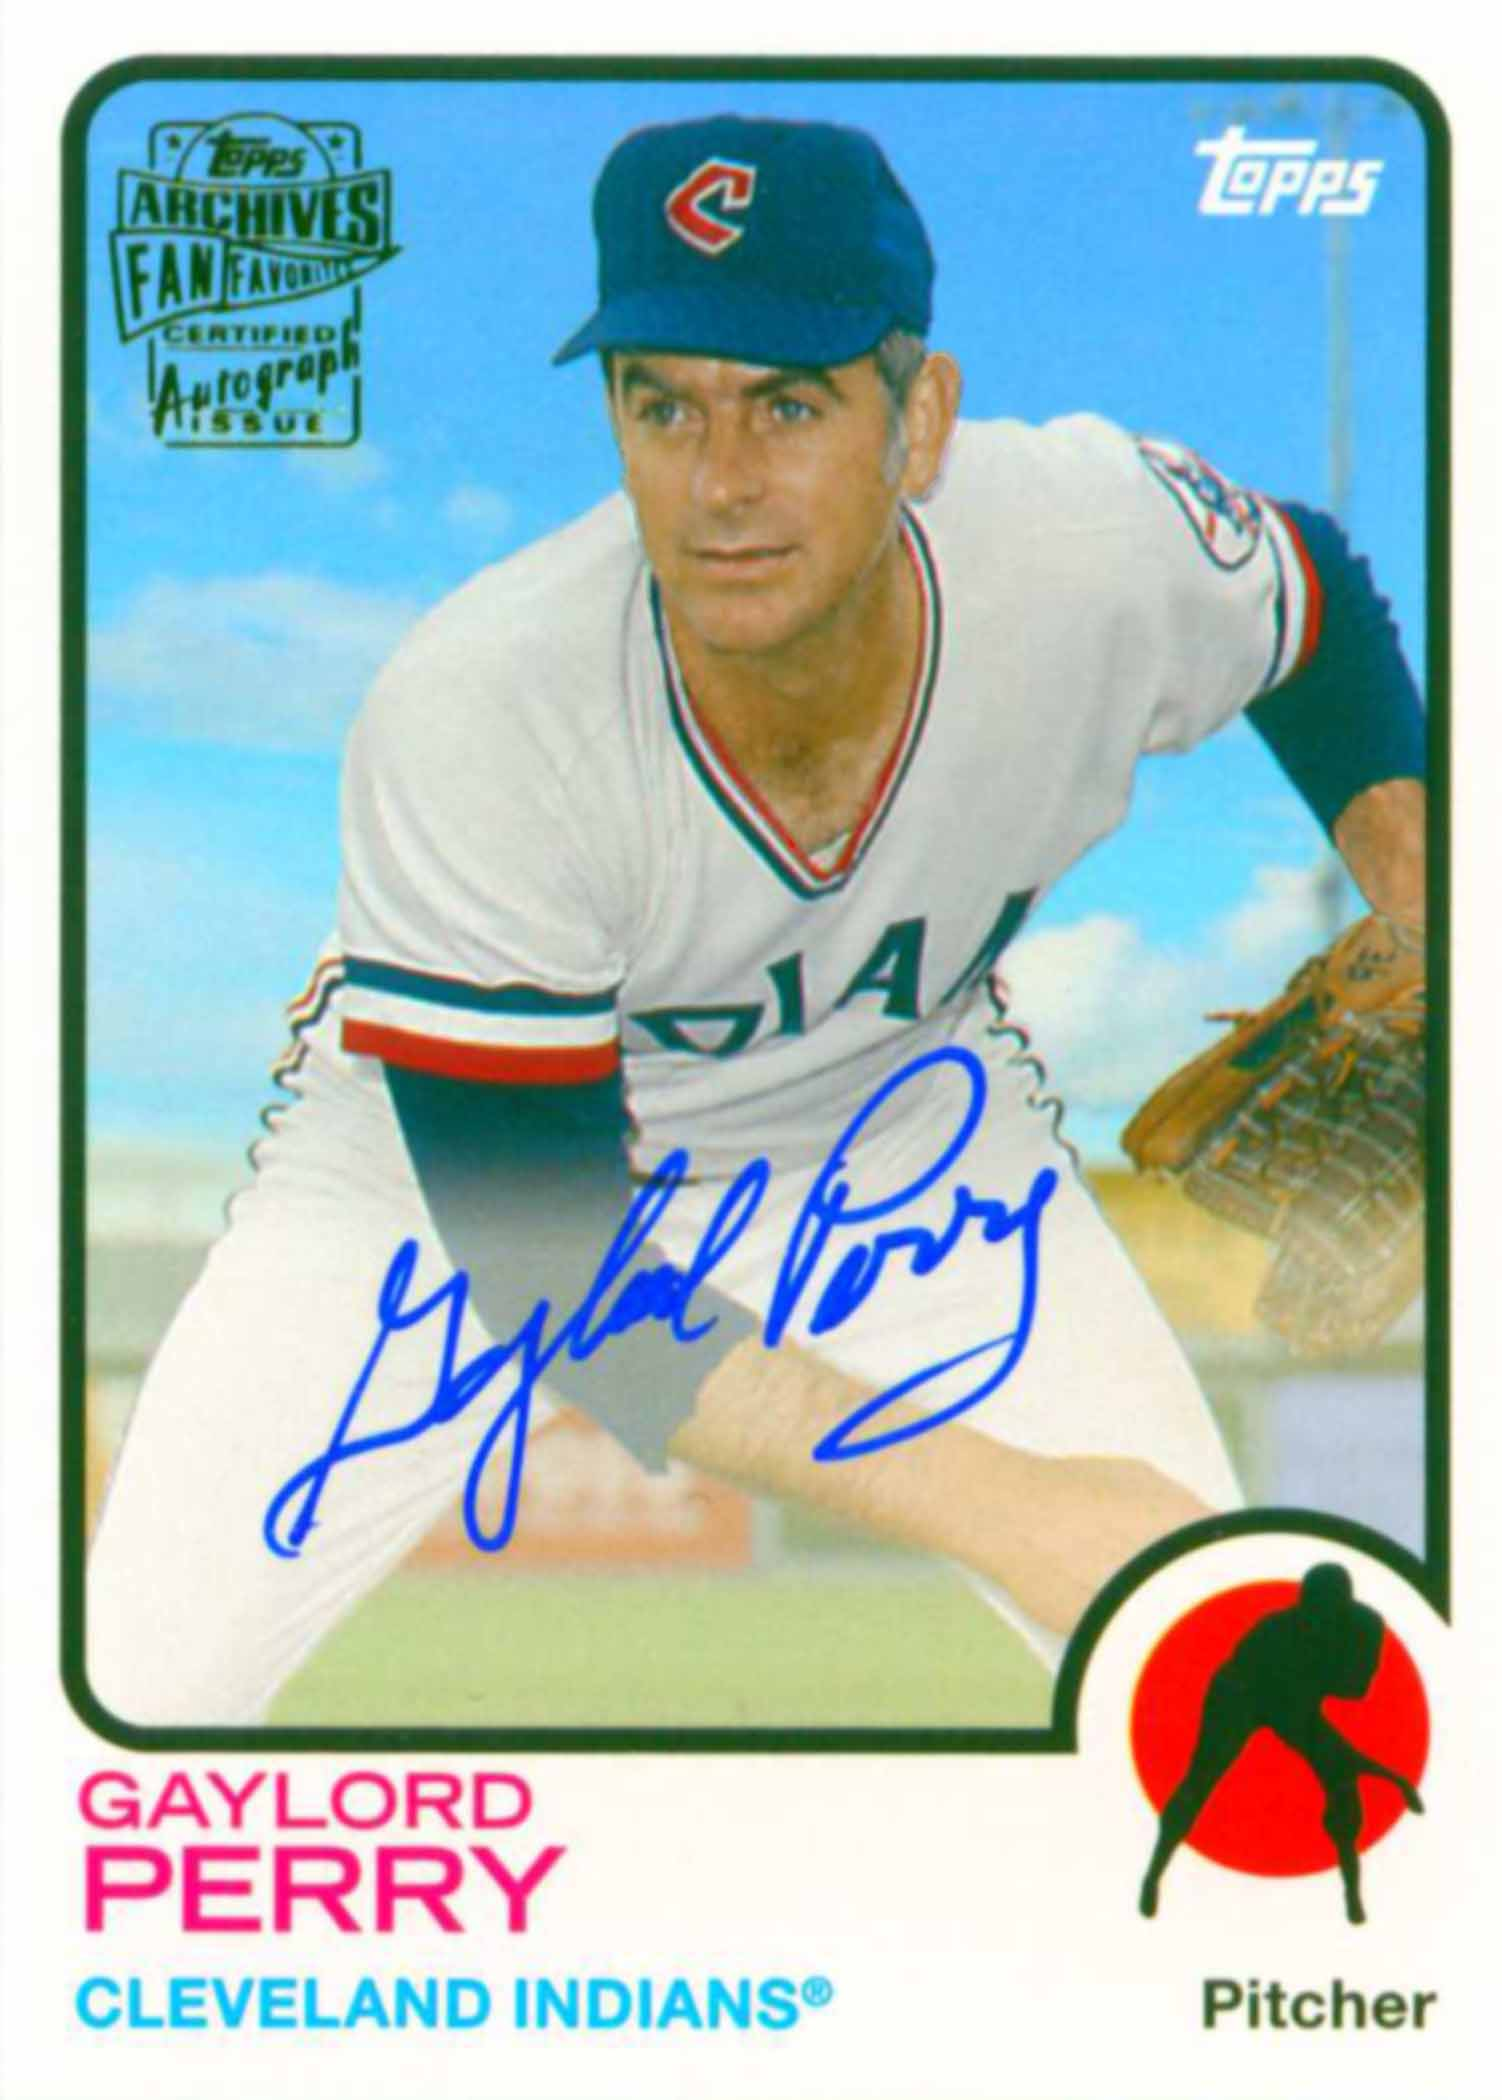 2015 Topps Archives Fan Favorites Autographs